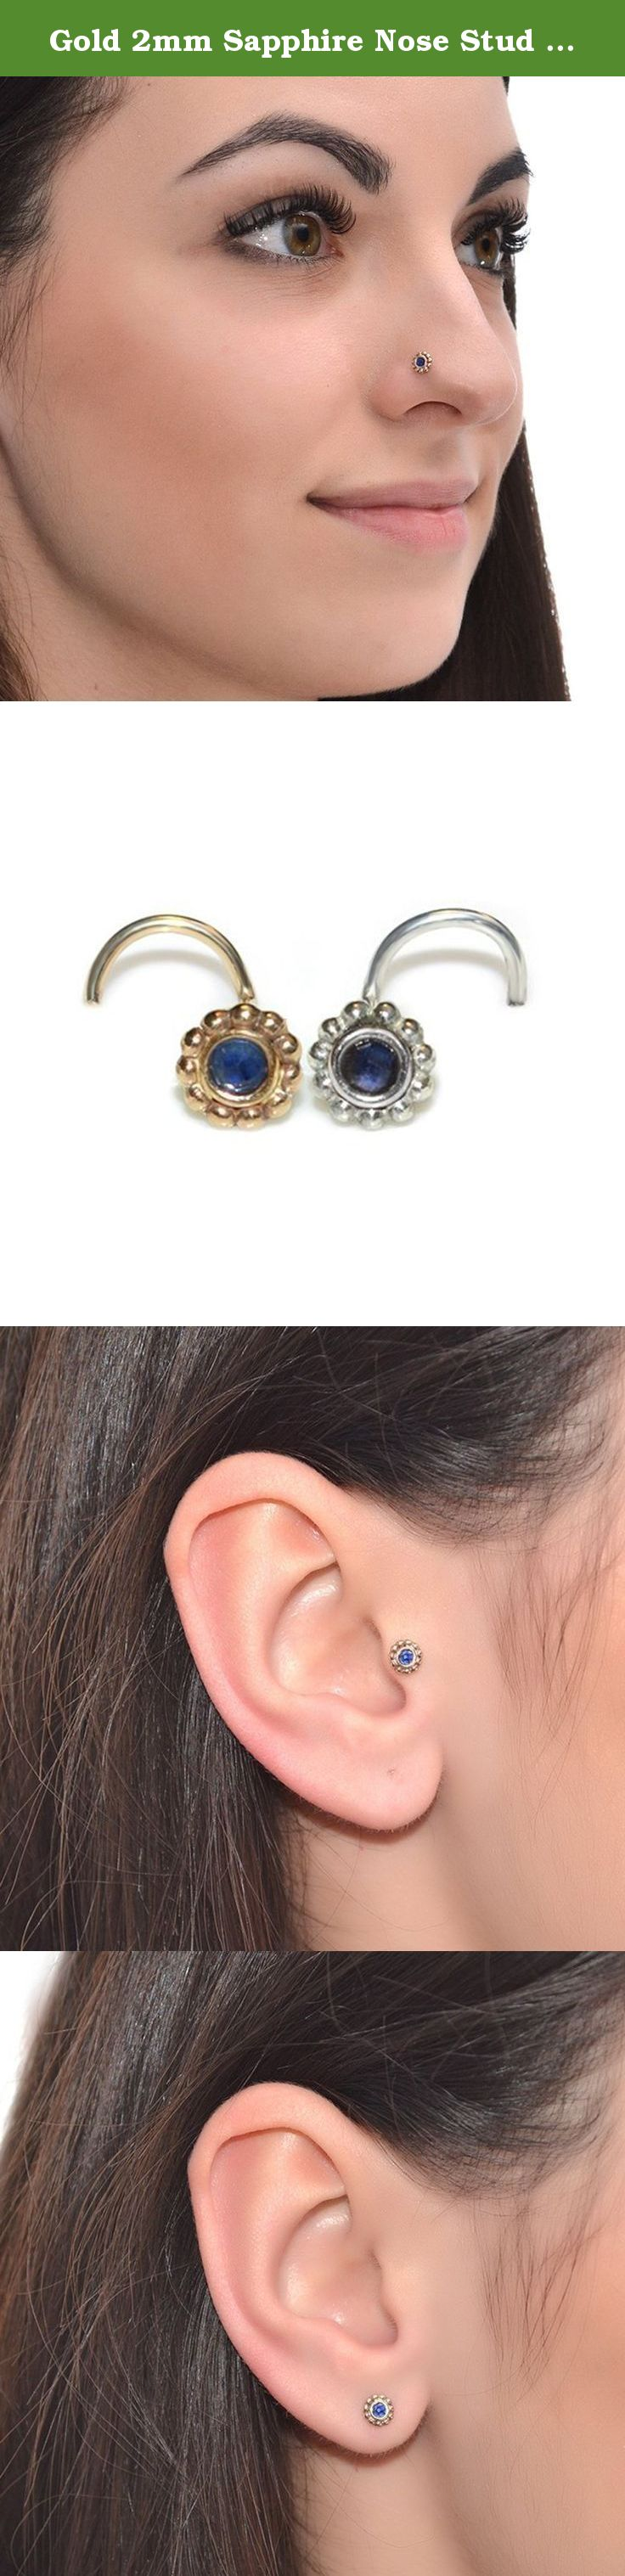 Nose piercing post  Gold mm Sapphire Nose Stud g  Tragus Stud Helix Earring